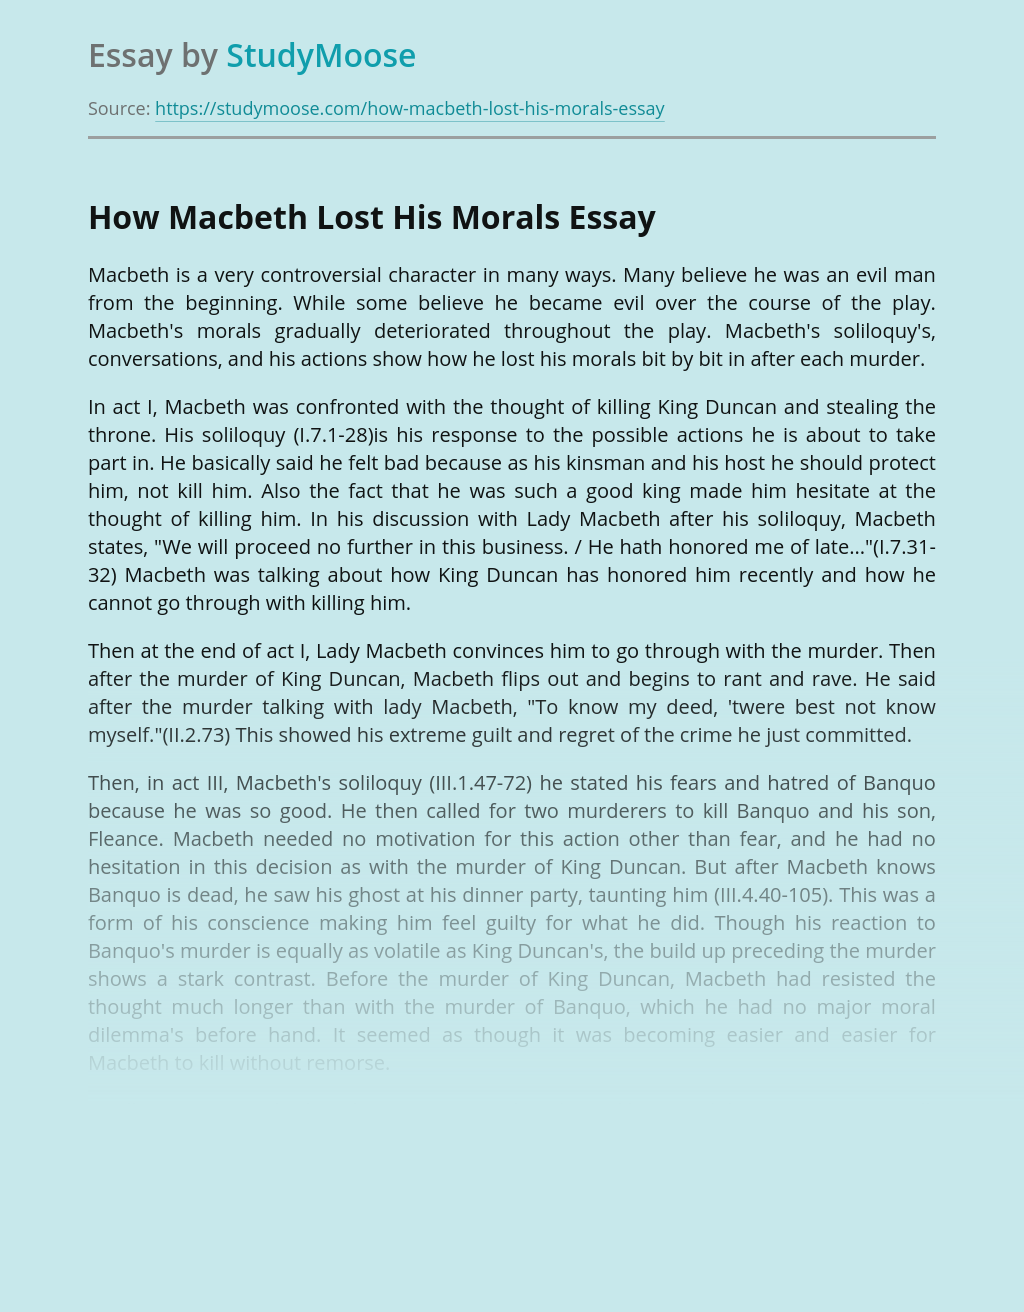 How Macbeth Lost His Morals